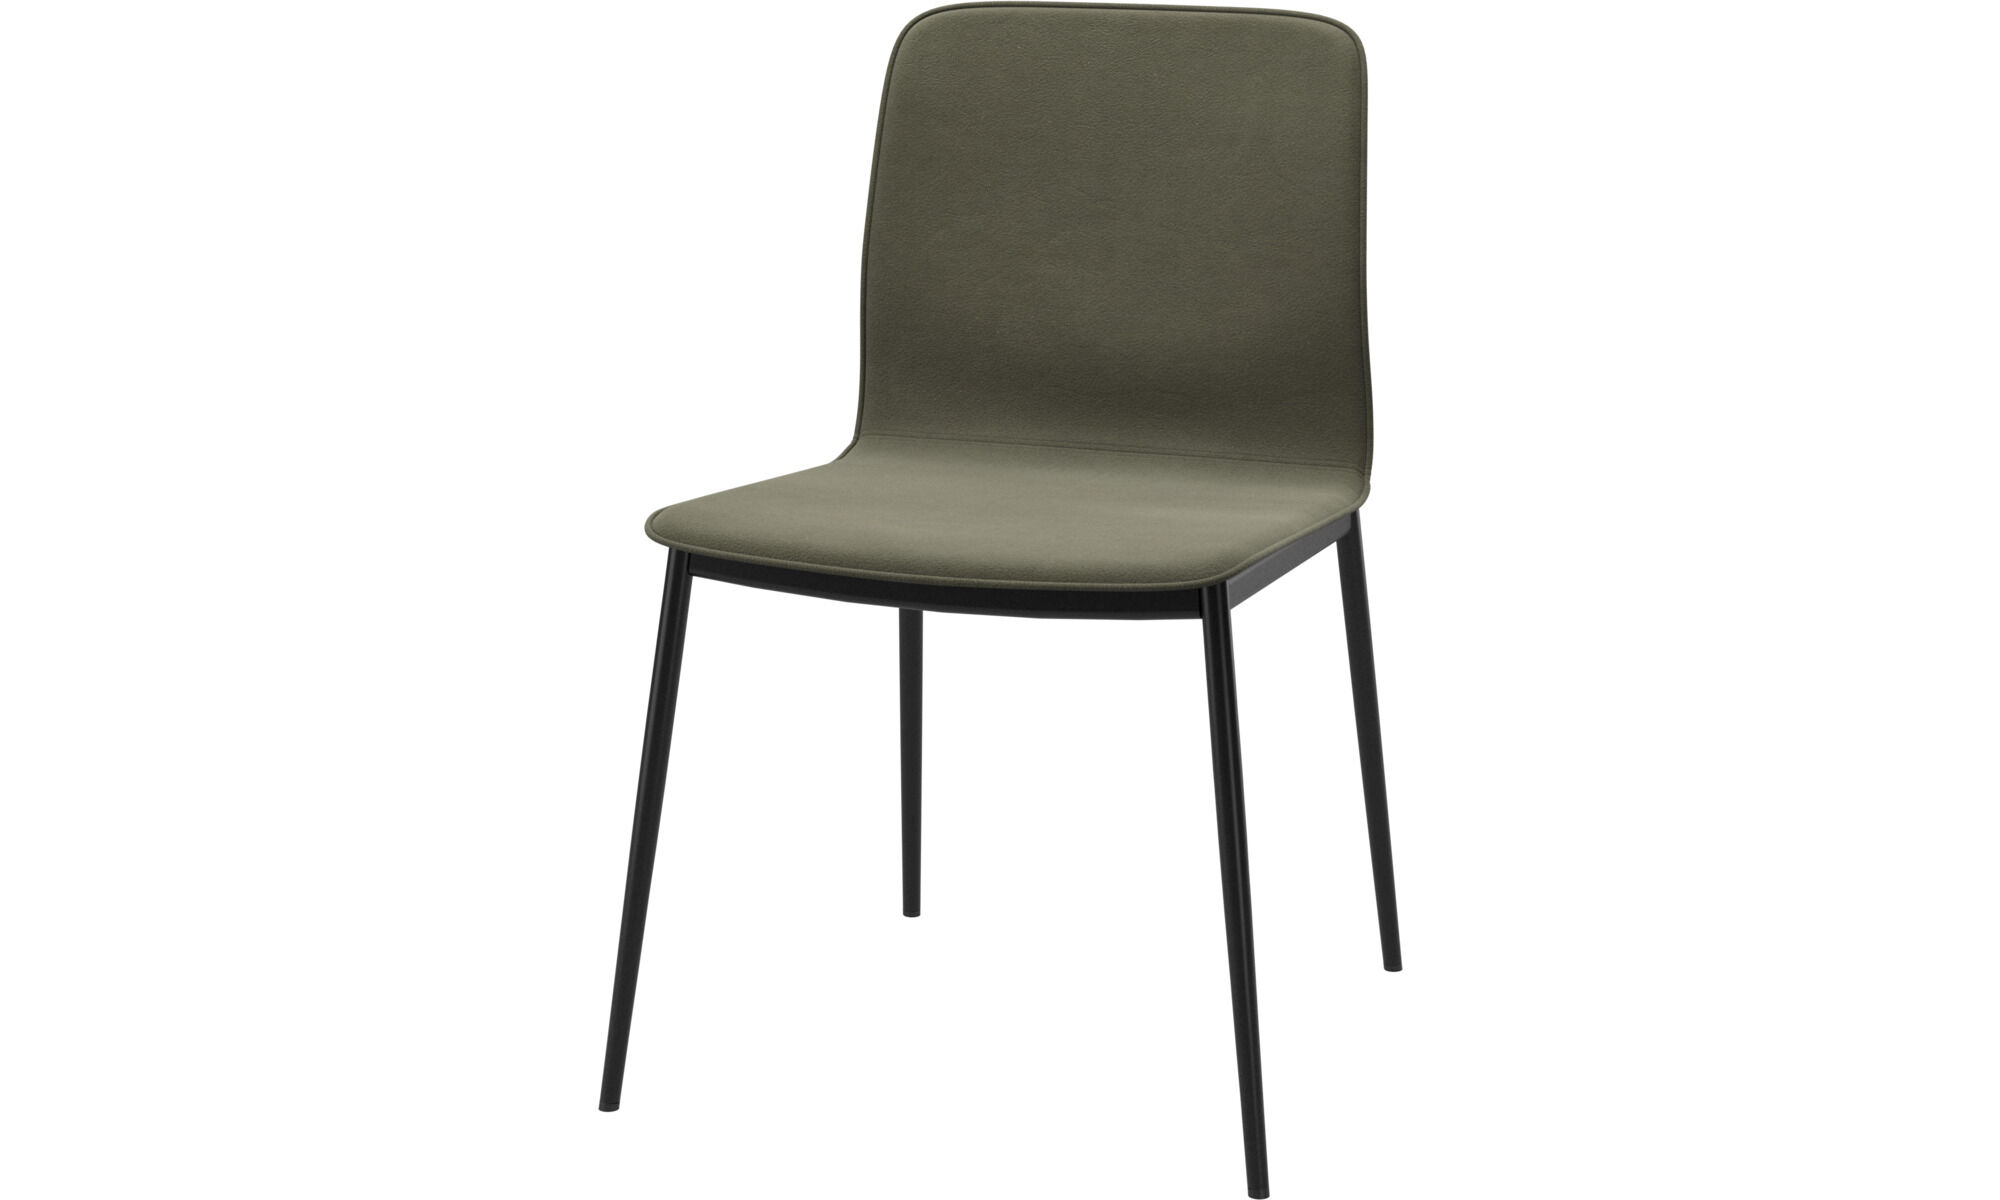 Newport Chair - Olive Green York Leather